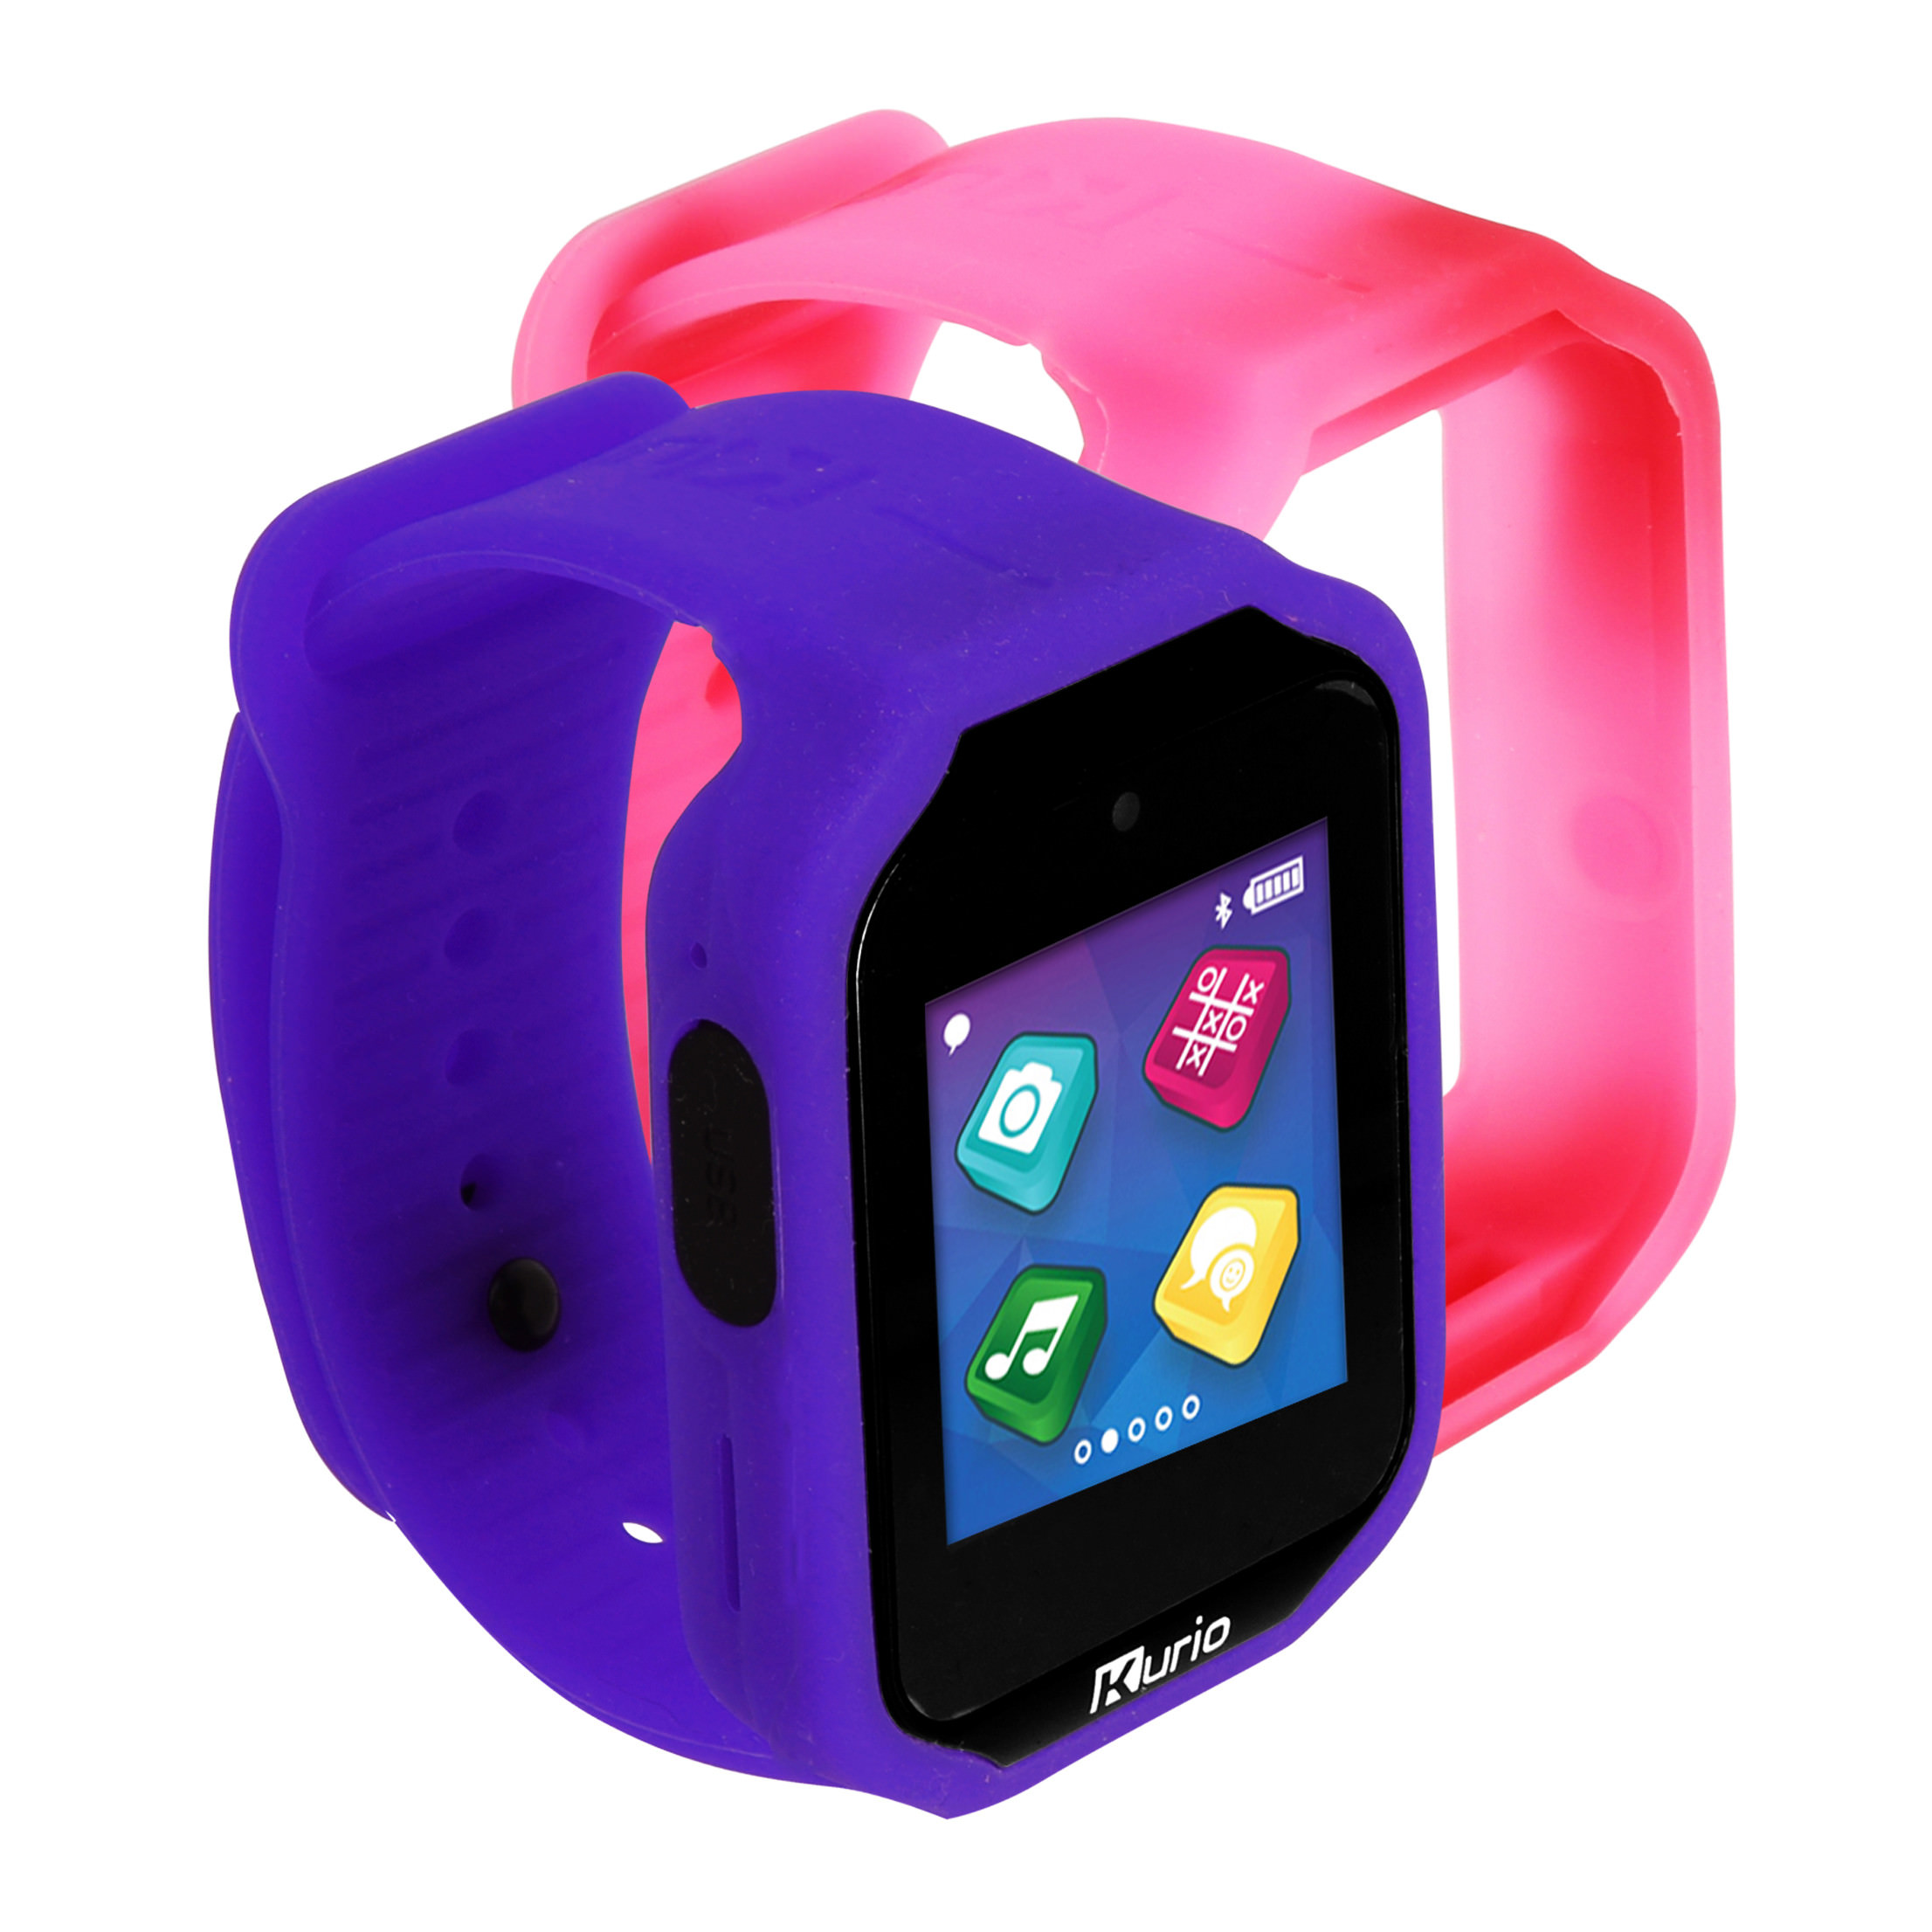 Kurio Watch 2.0+ Smartwatch Built for Kids with 2 Bands, Lavender and Color Change